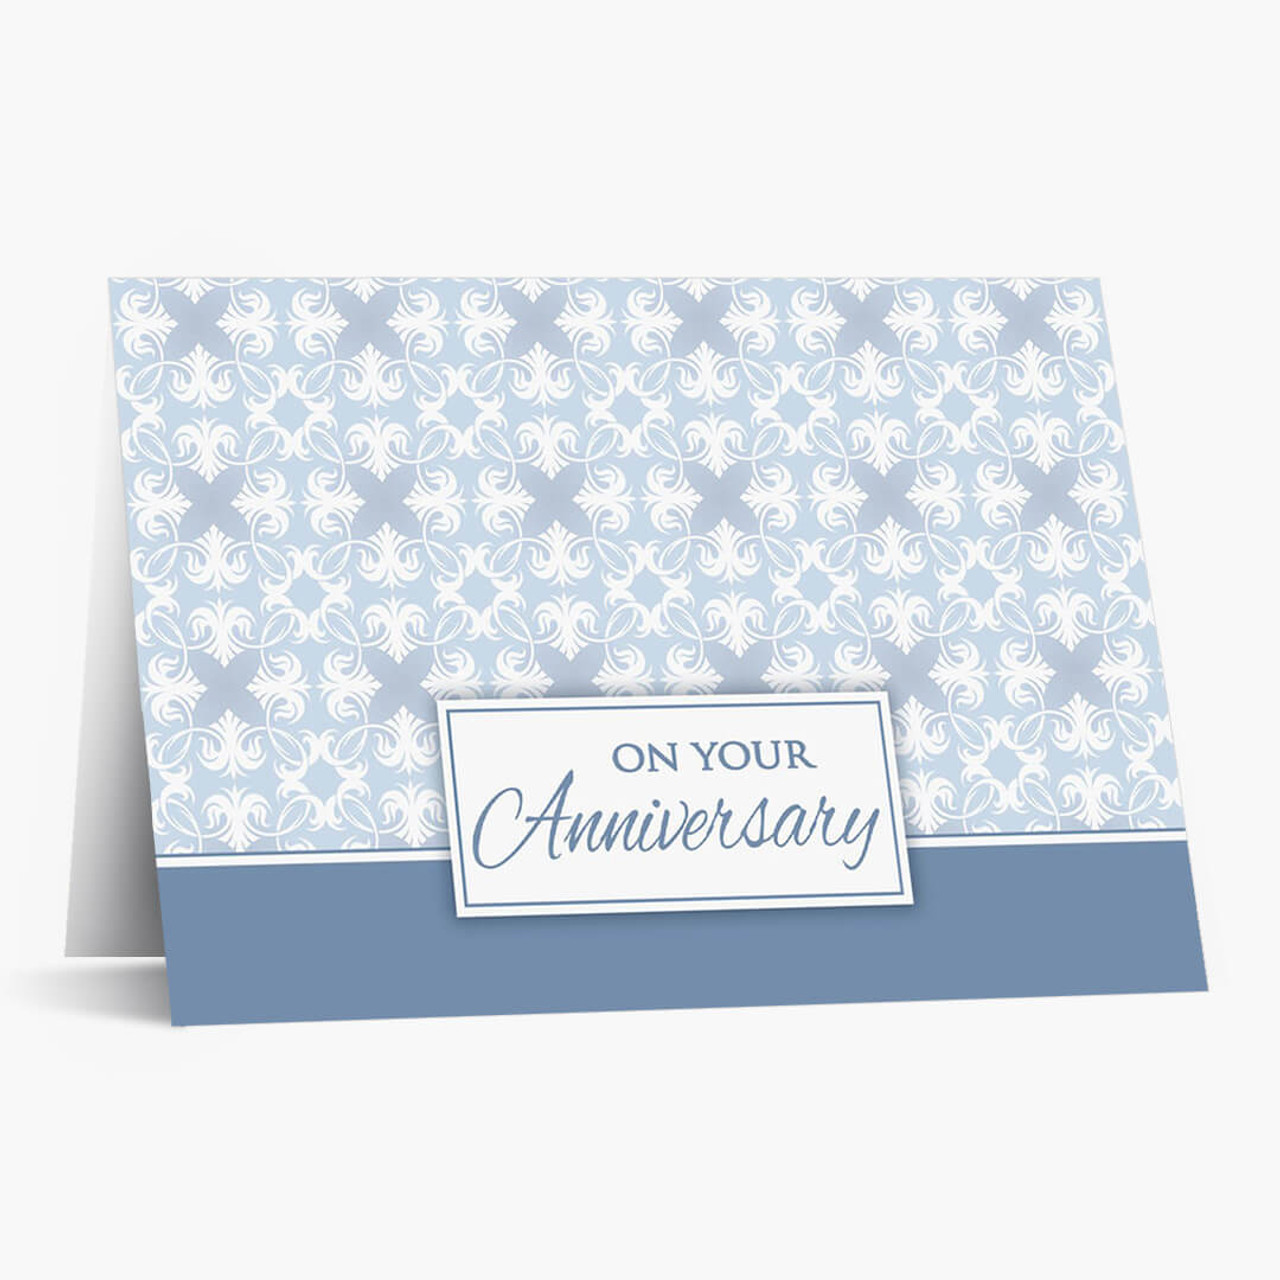 On Your Anniversary Card